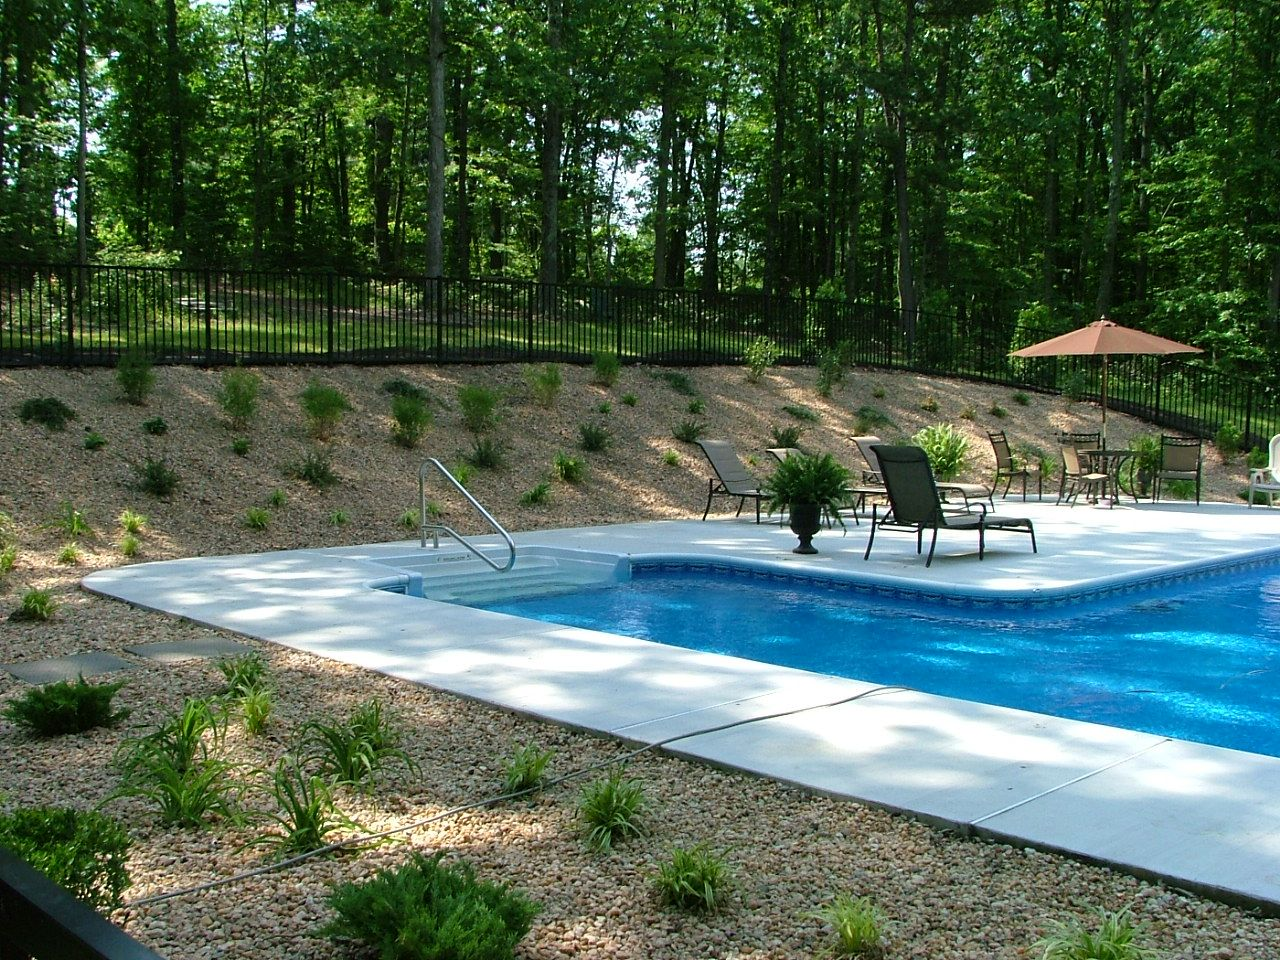 I Have An Uphill Slope In My Backyard This Looks Nice The Other Option Are Walls Which Can Get Expensive Sloped Backyard Backyard House Landscape